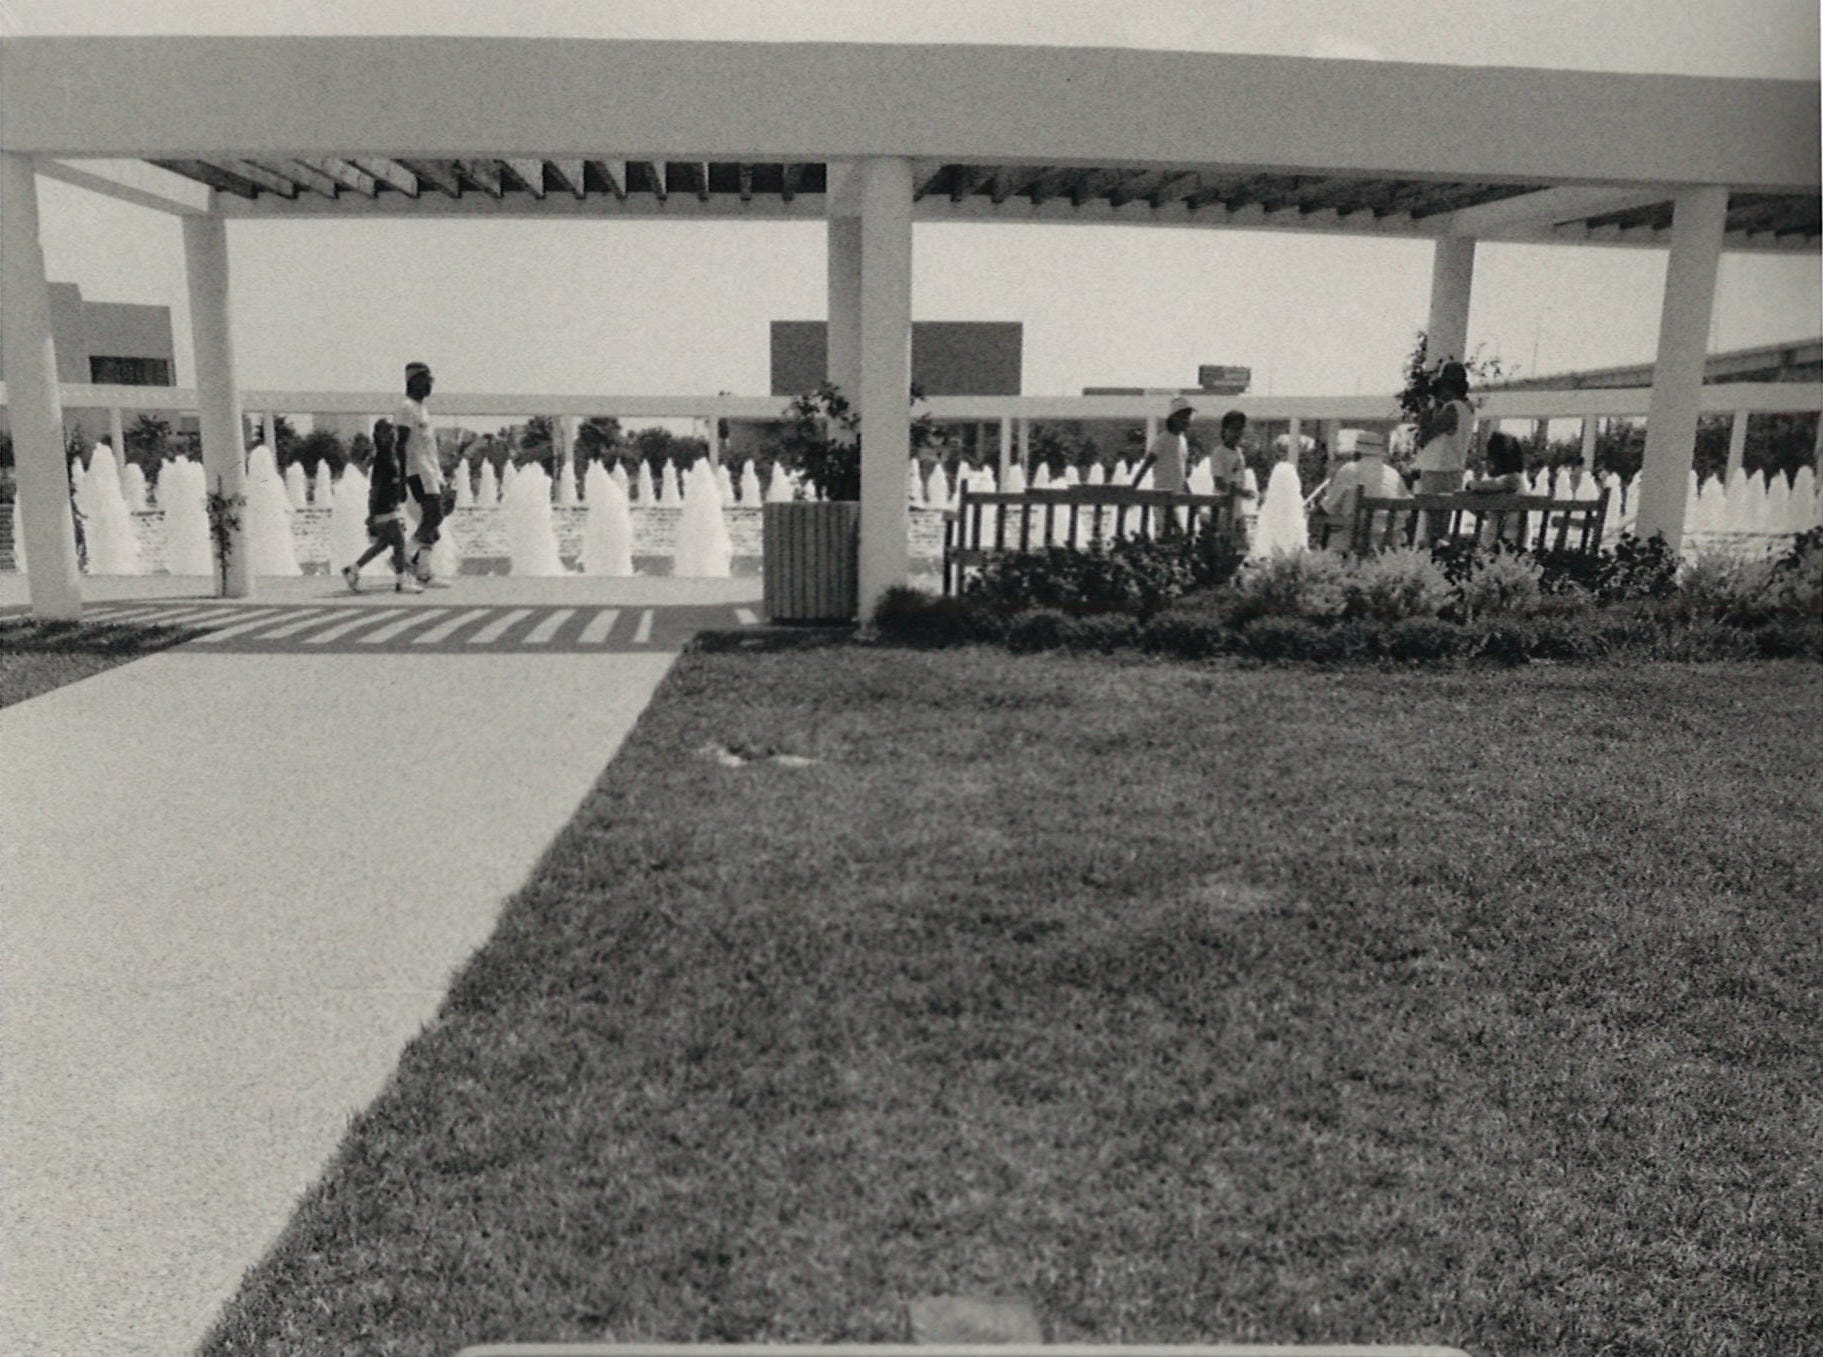 A new warning sign to keep people from swimming and wading in the water at the Corpus Christi Watergarden on July 28, 1988.